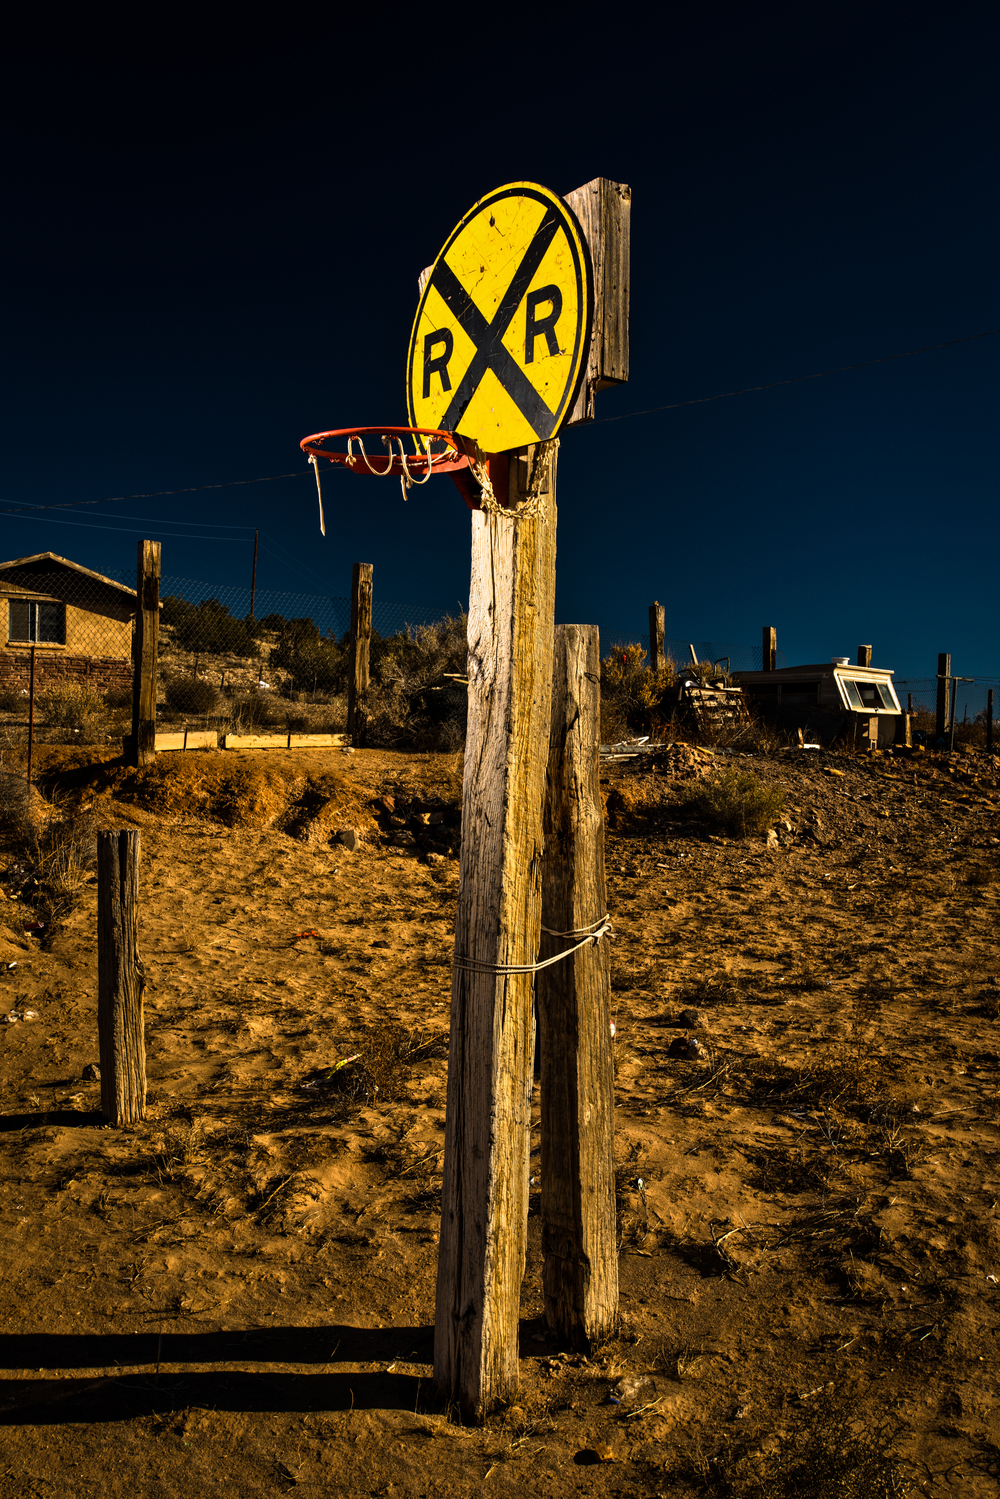 Railroad crossing sign as a backboard in New Mexico © Rob Hammer